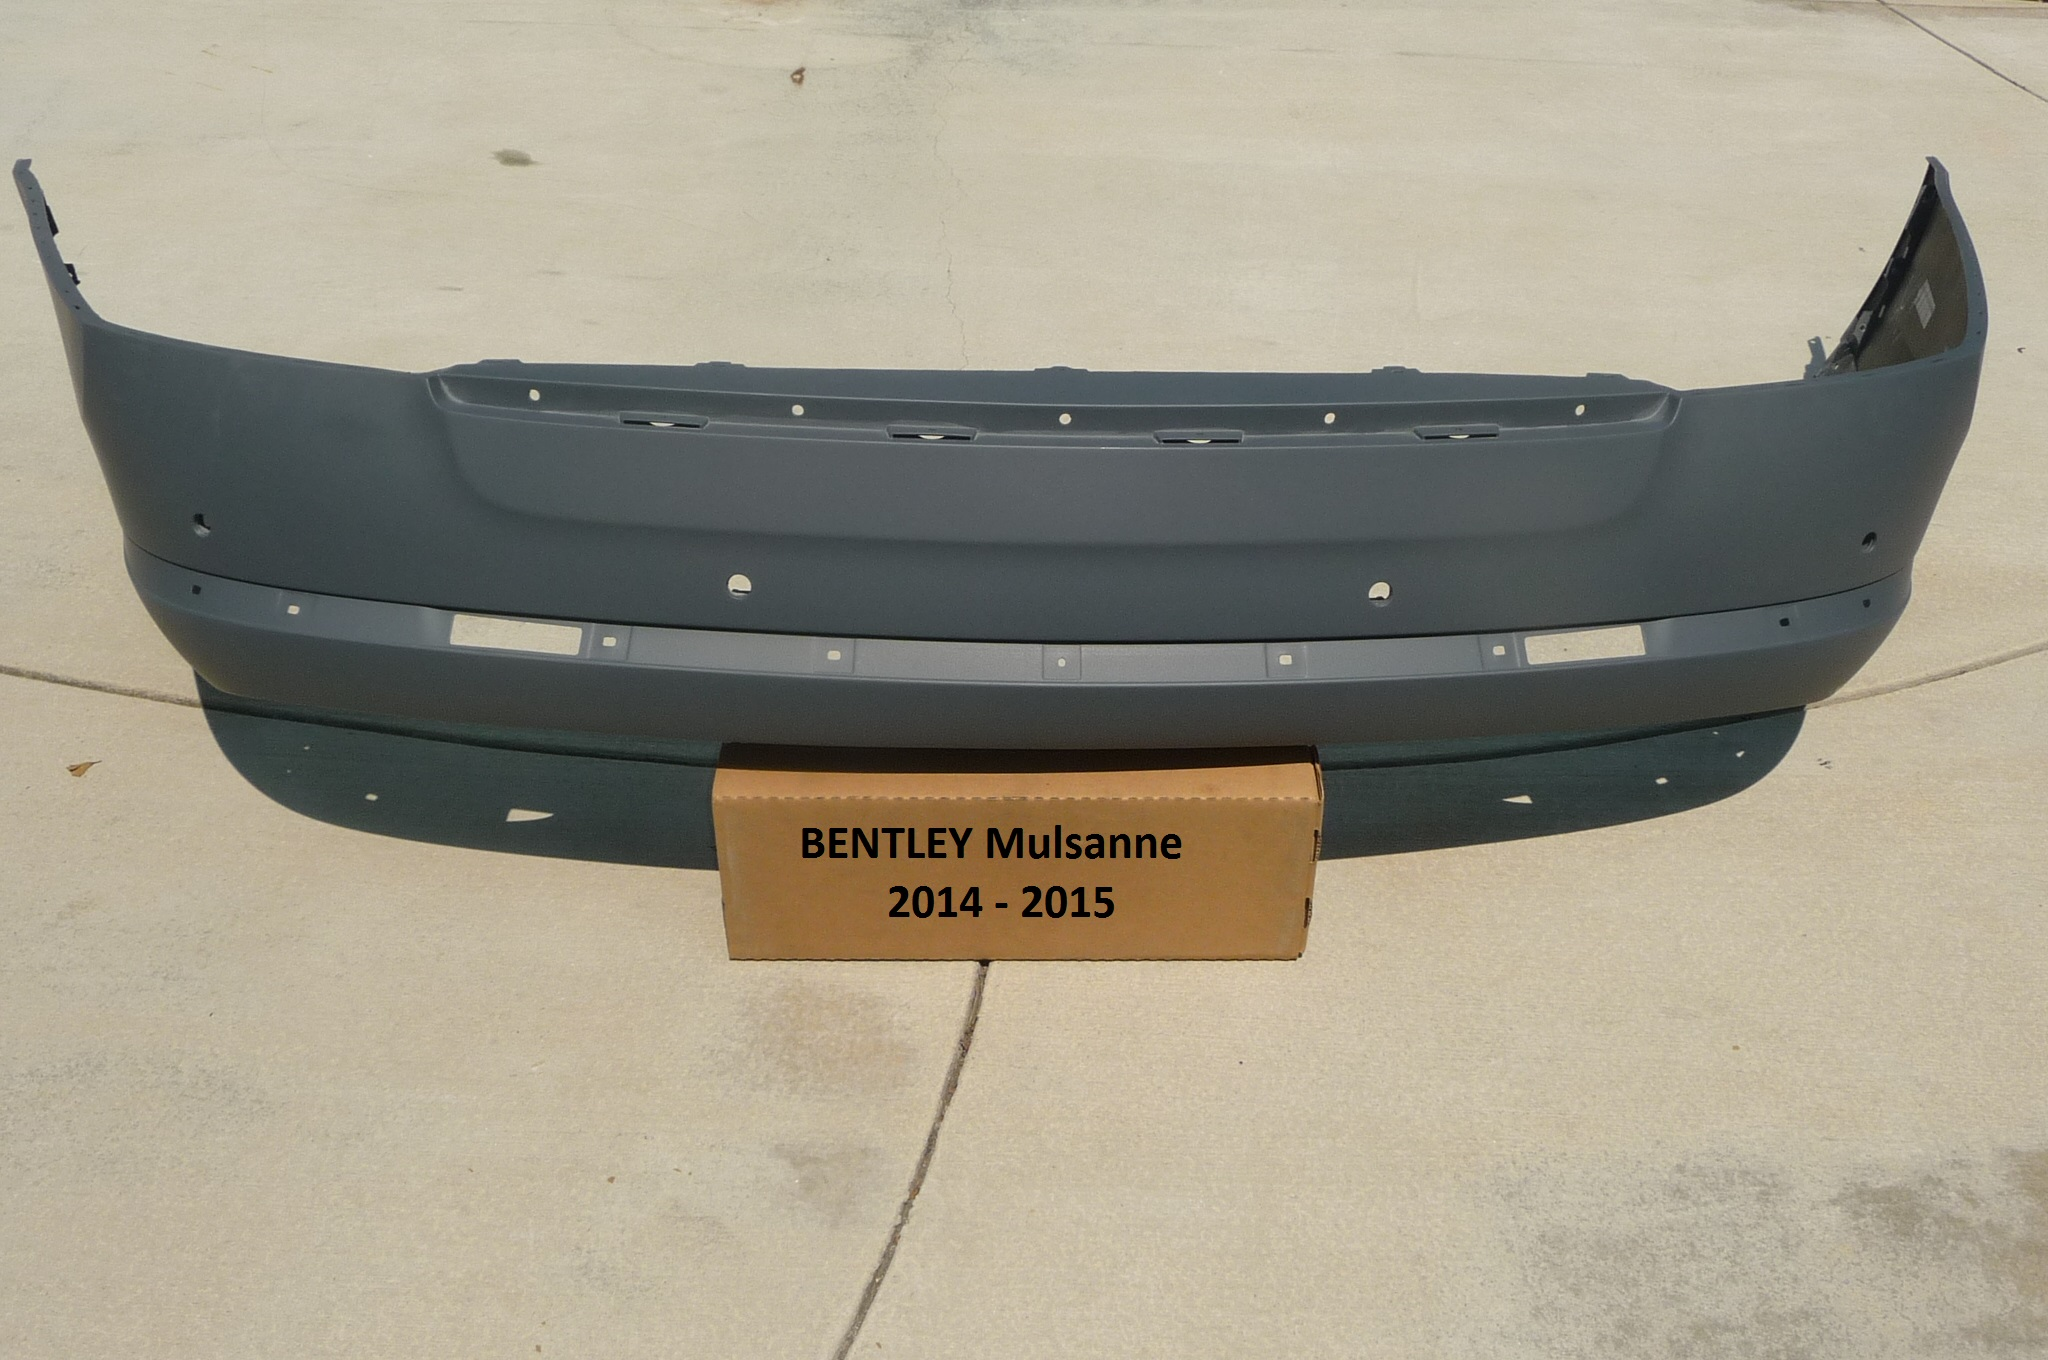 "2011 2012 2013 2014 2015 2016 Bentley Mulsanne Rear Bumper Cover ""Remaufactured"" 3Y0807421 OEM OE"